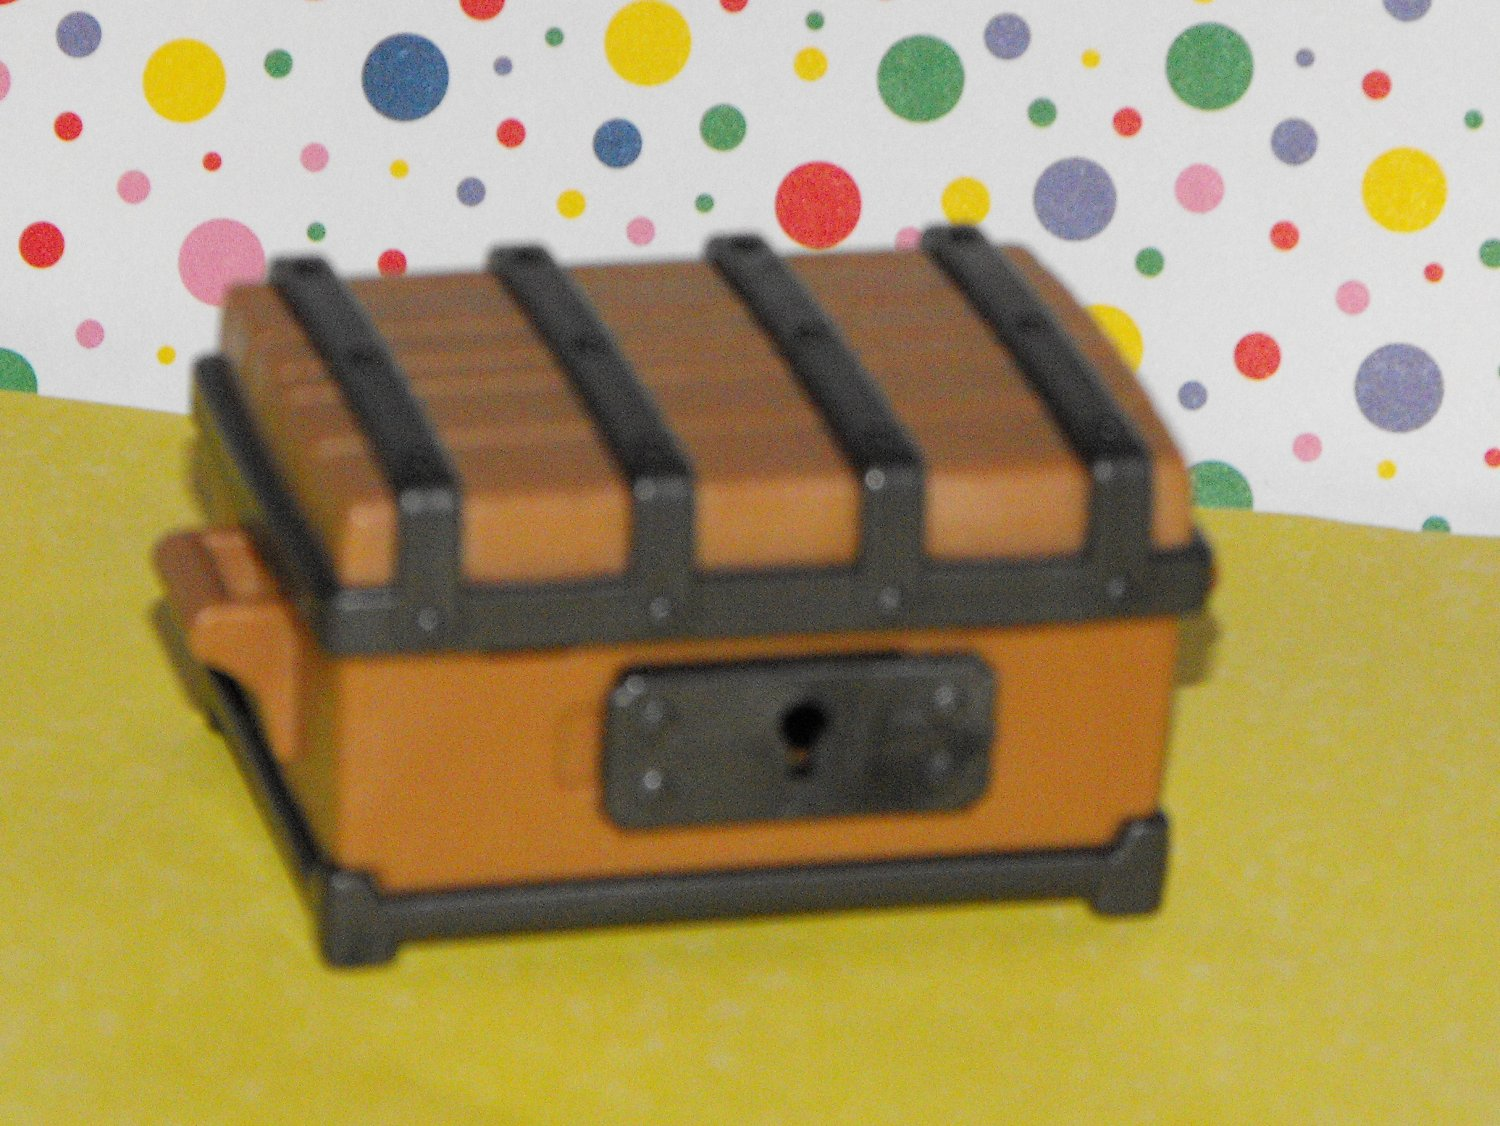 Playmobil Blackbeard's Pirate Ship Treasure Chest Parts